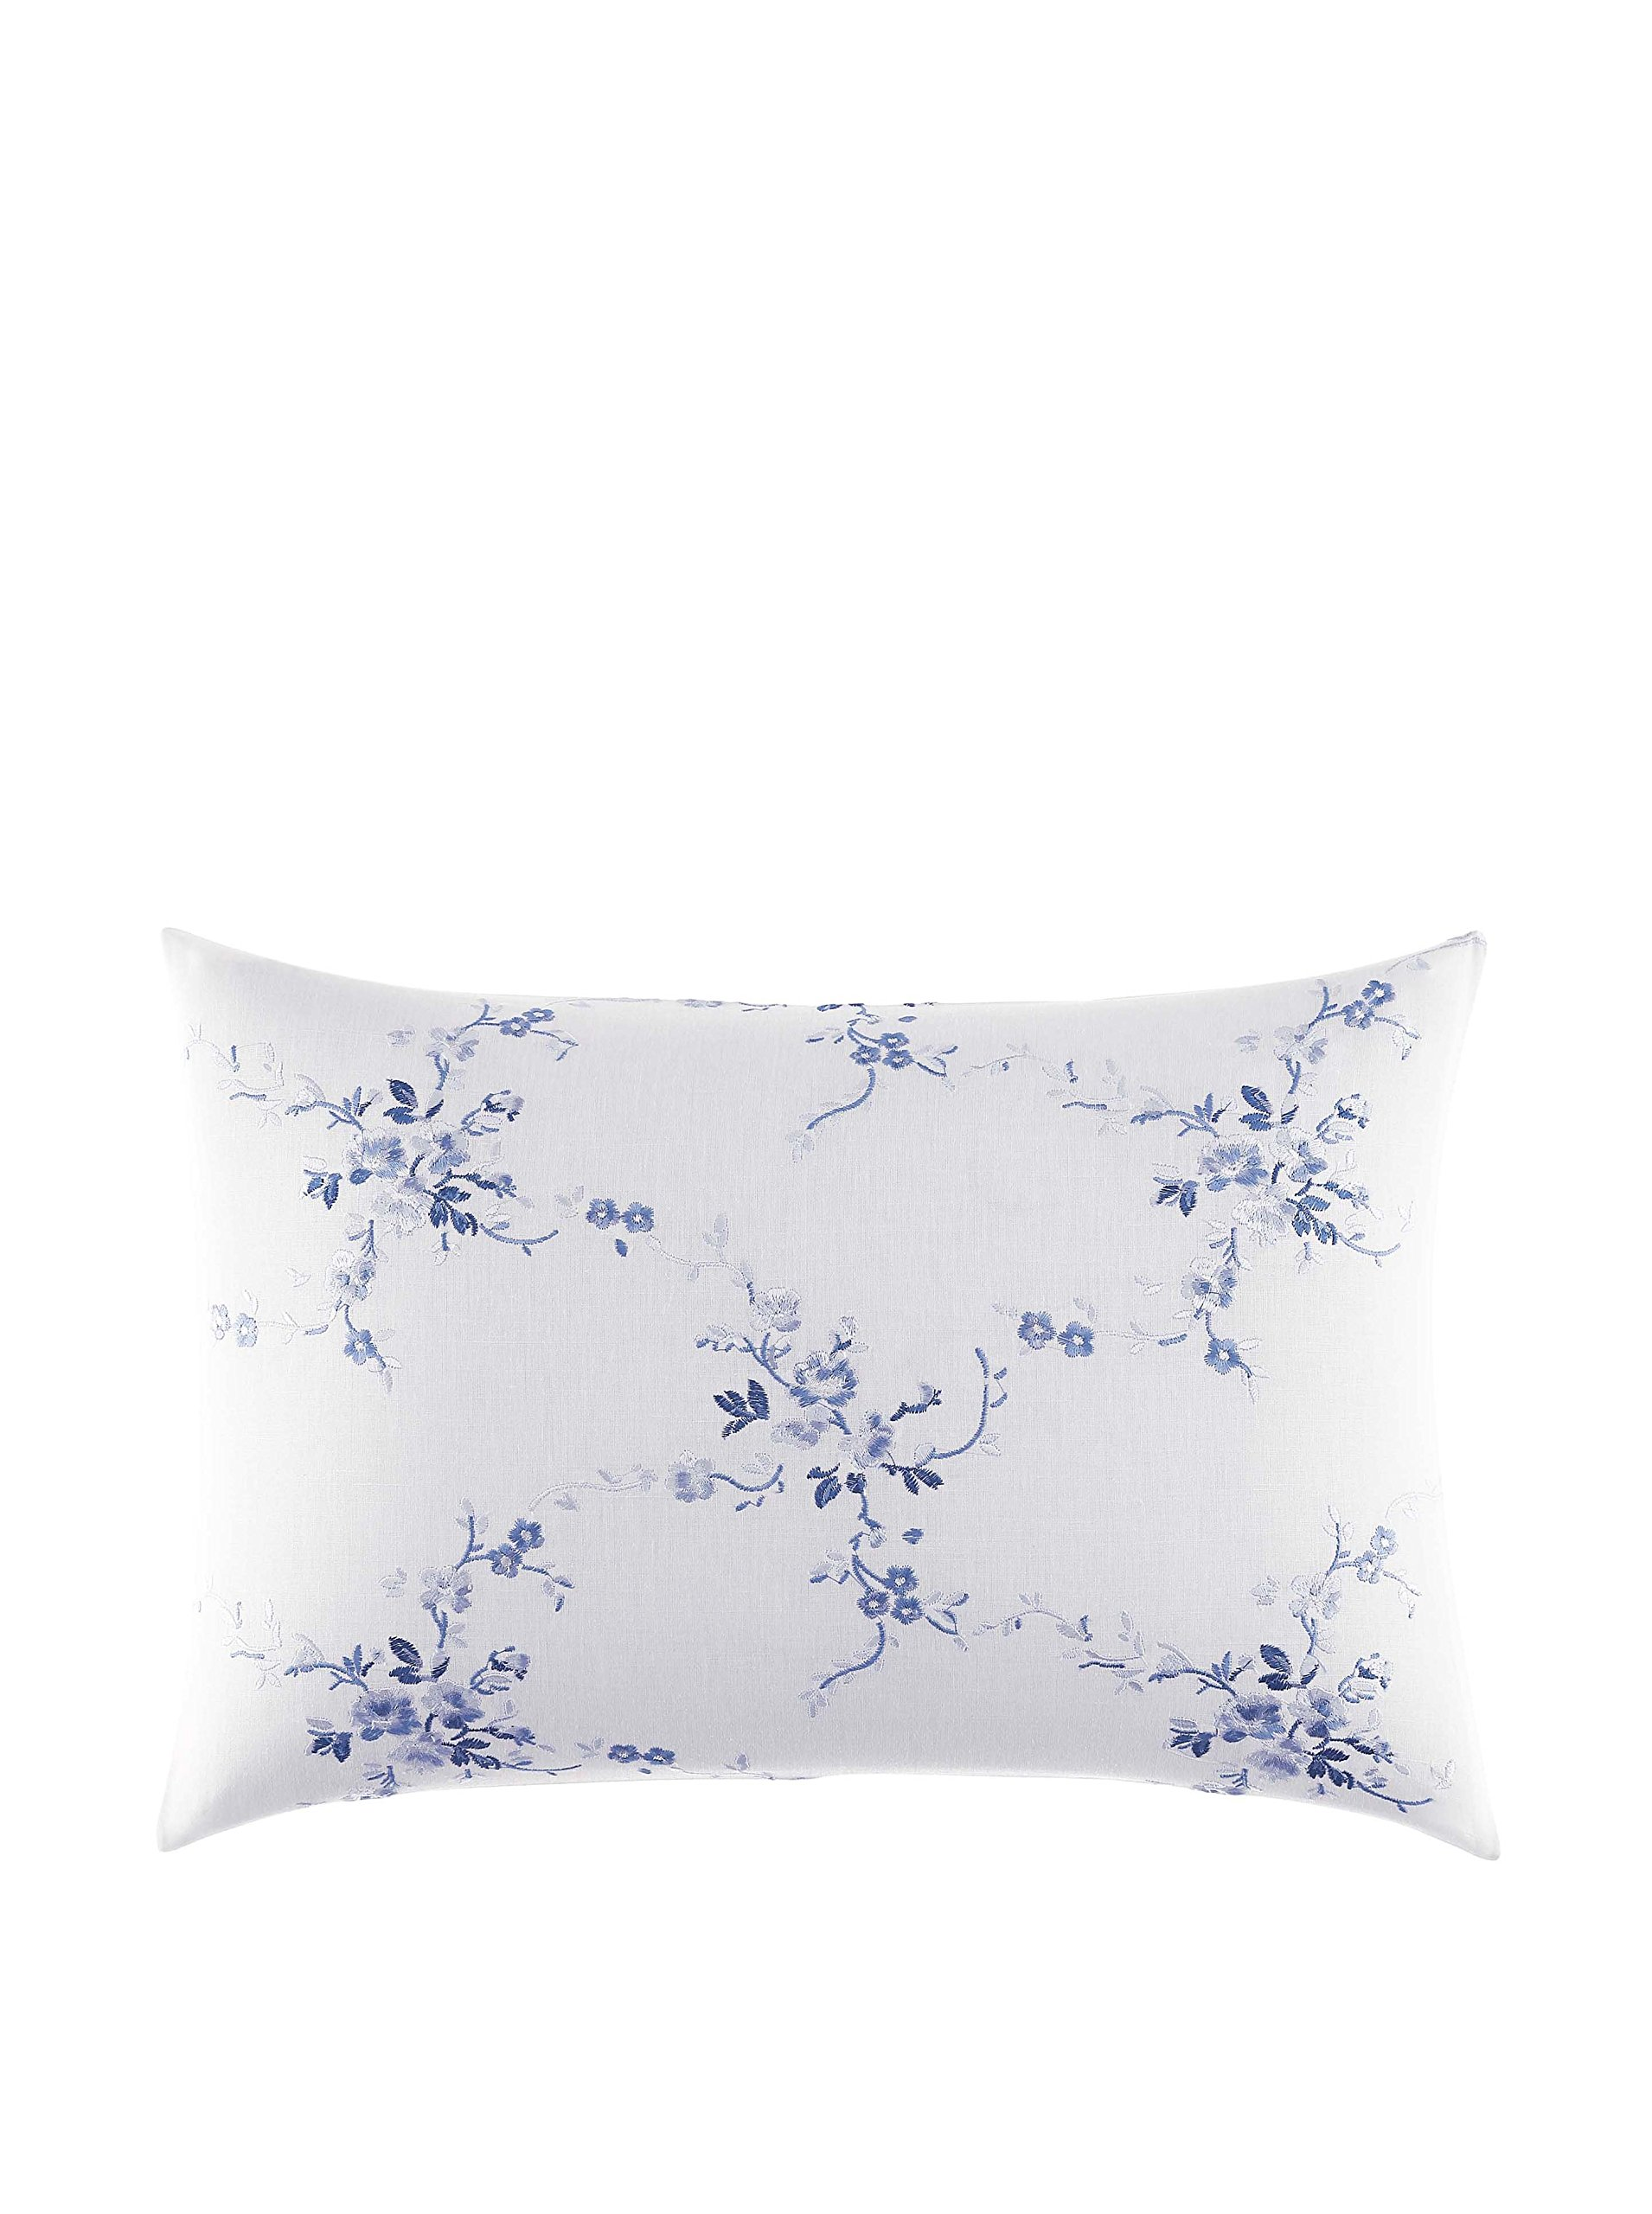 Laura Ashley Charlotte 14x20 Breakfast Pillow, Blue - Dec pillow is 14x20 Pillow features embroidery details Pillow includes removable polyester insert - living-room-soft-furnishings, living-room, decorative-pillows - 81uNnnL7uVL -